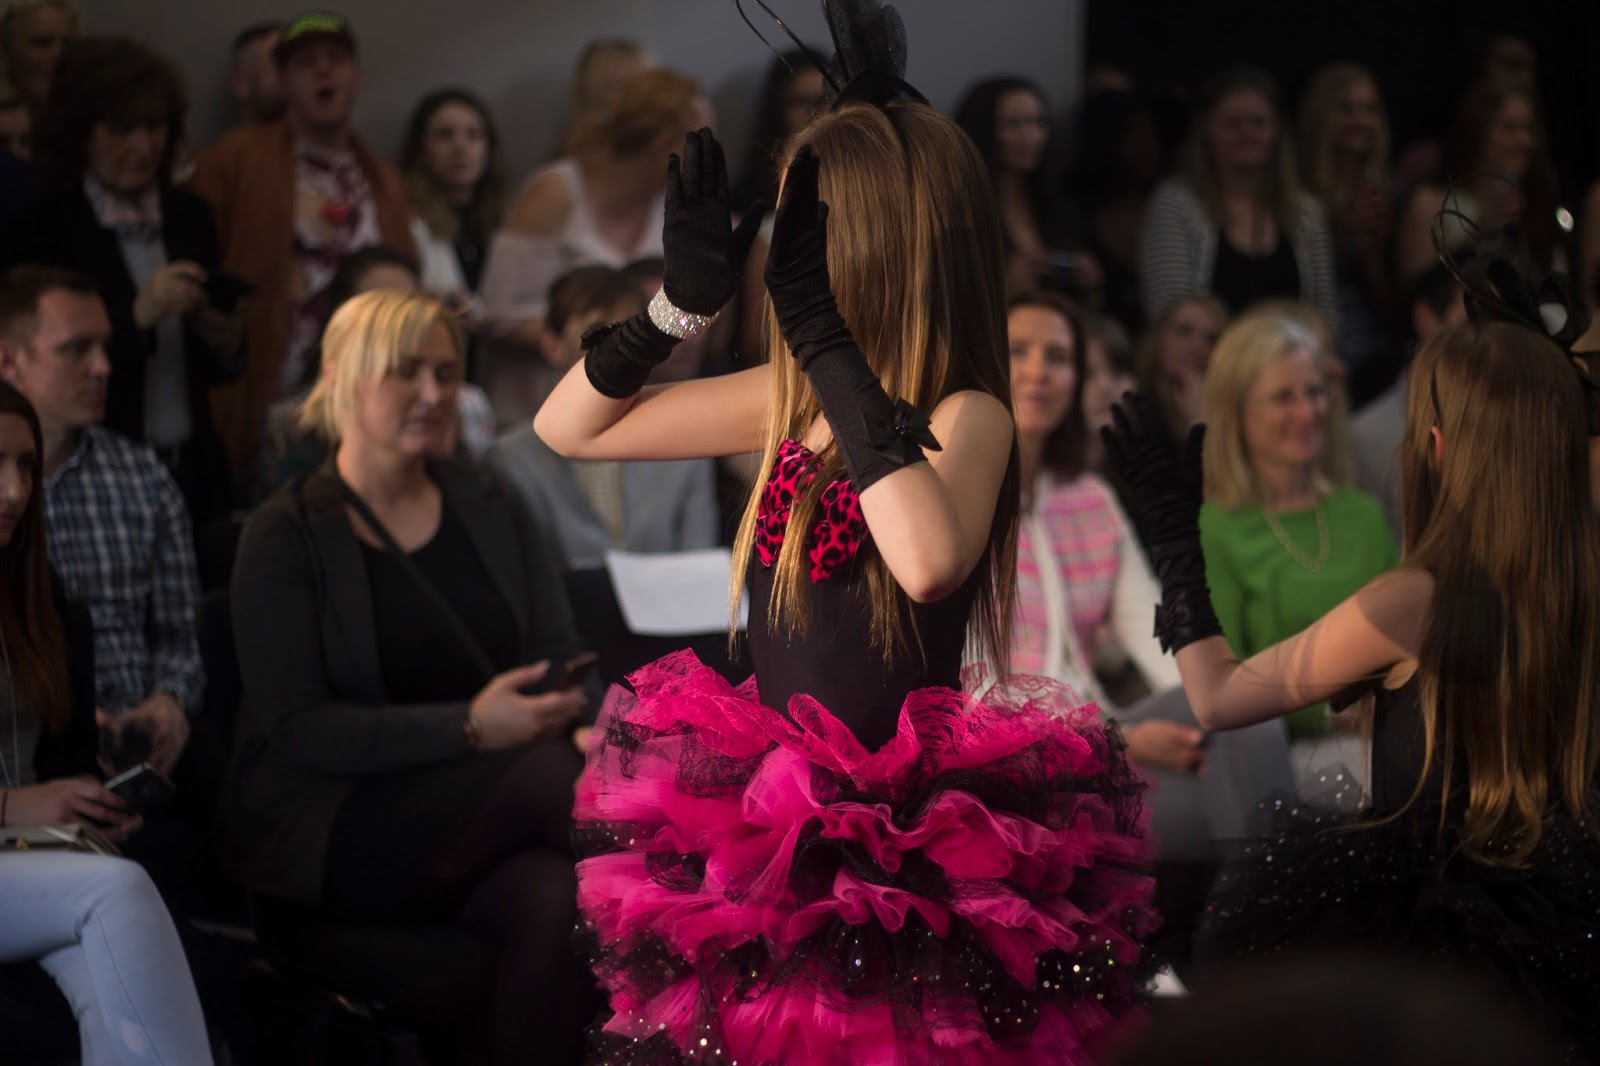 Pandorella by Karina So. at FashionE Manchester Fashion Week for Ses Rêveries